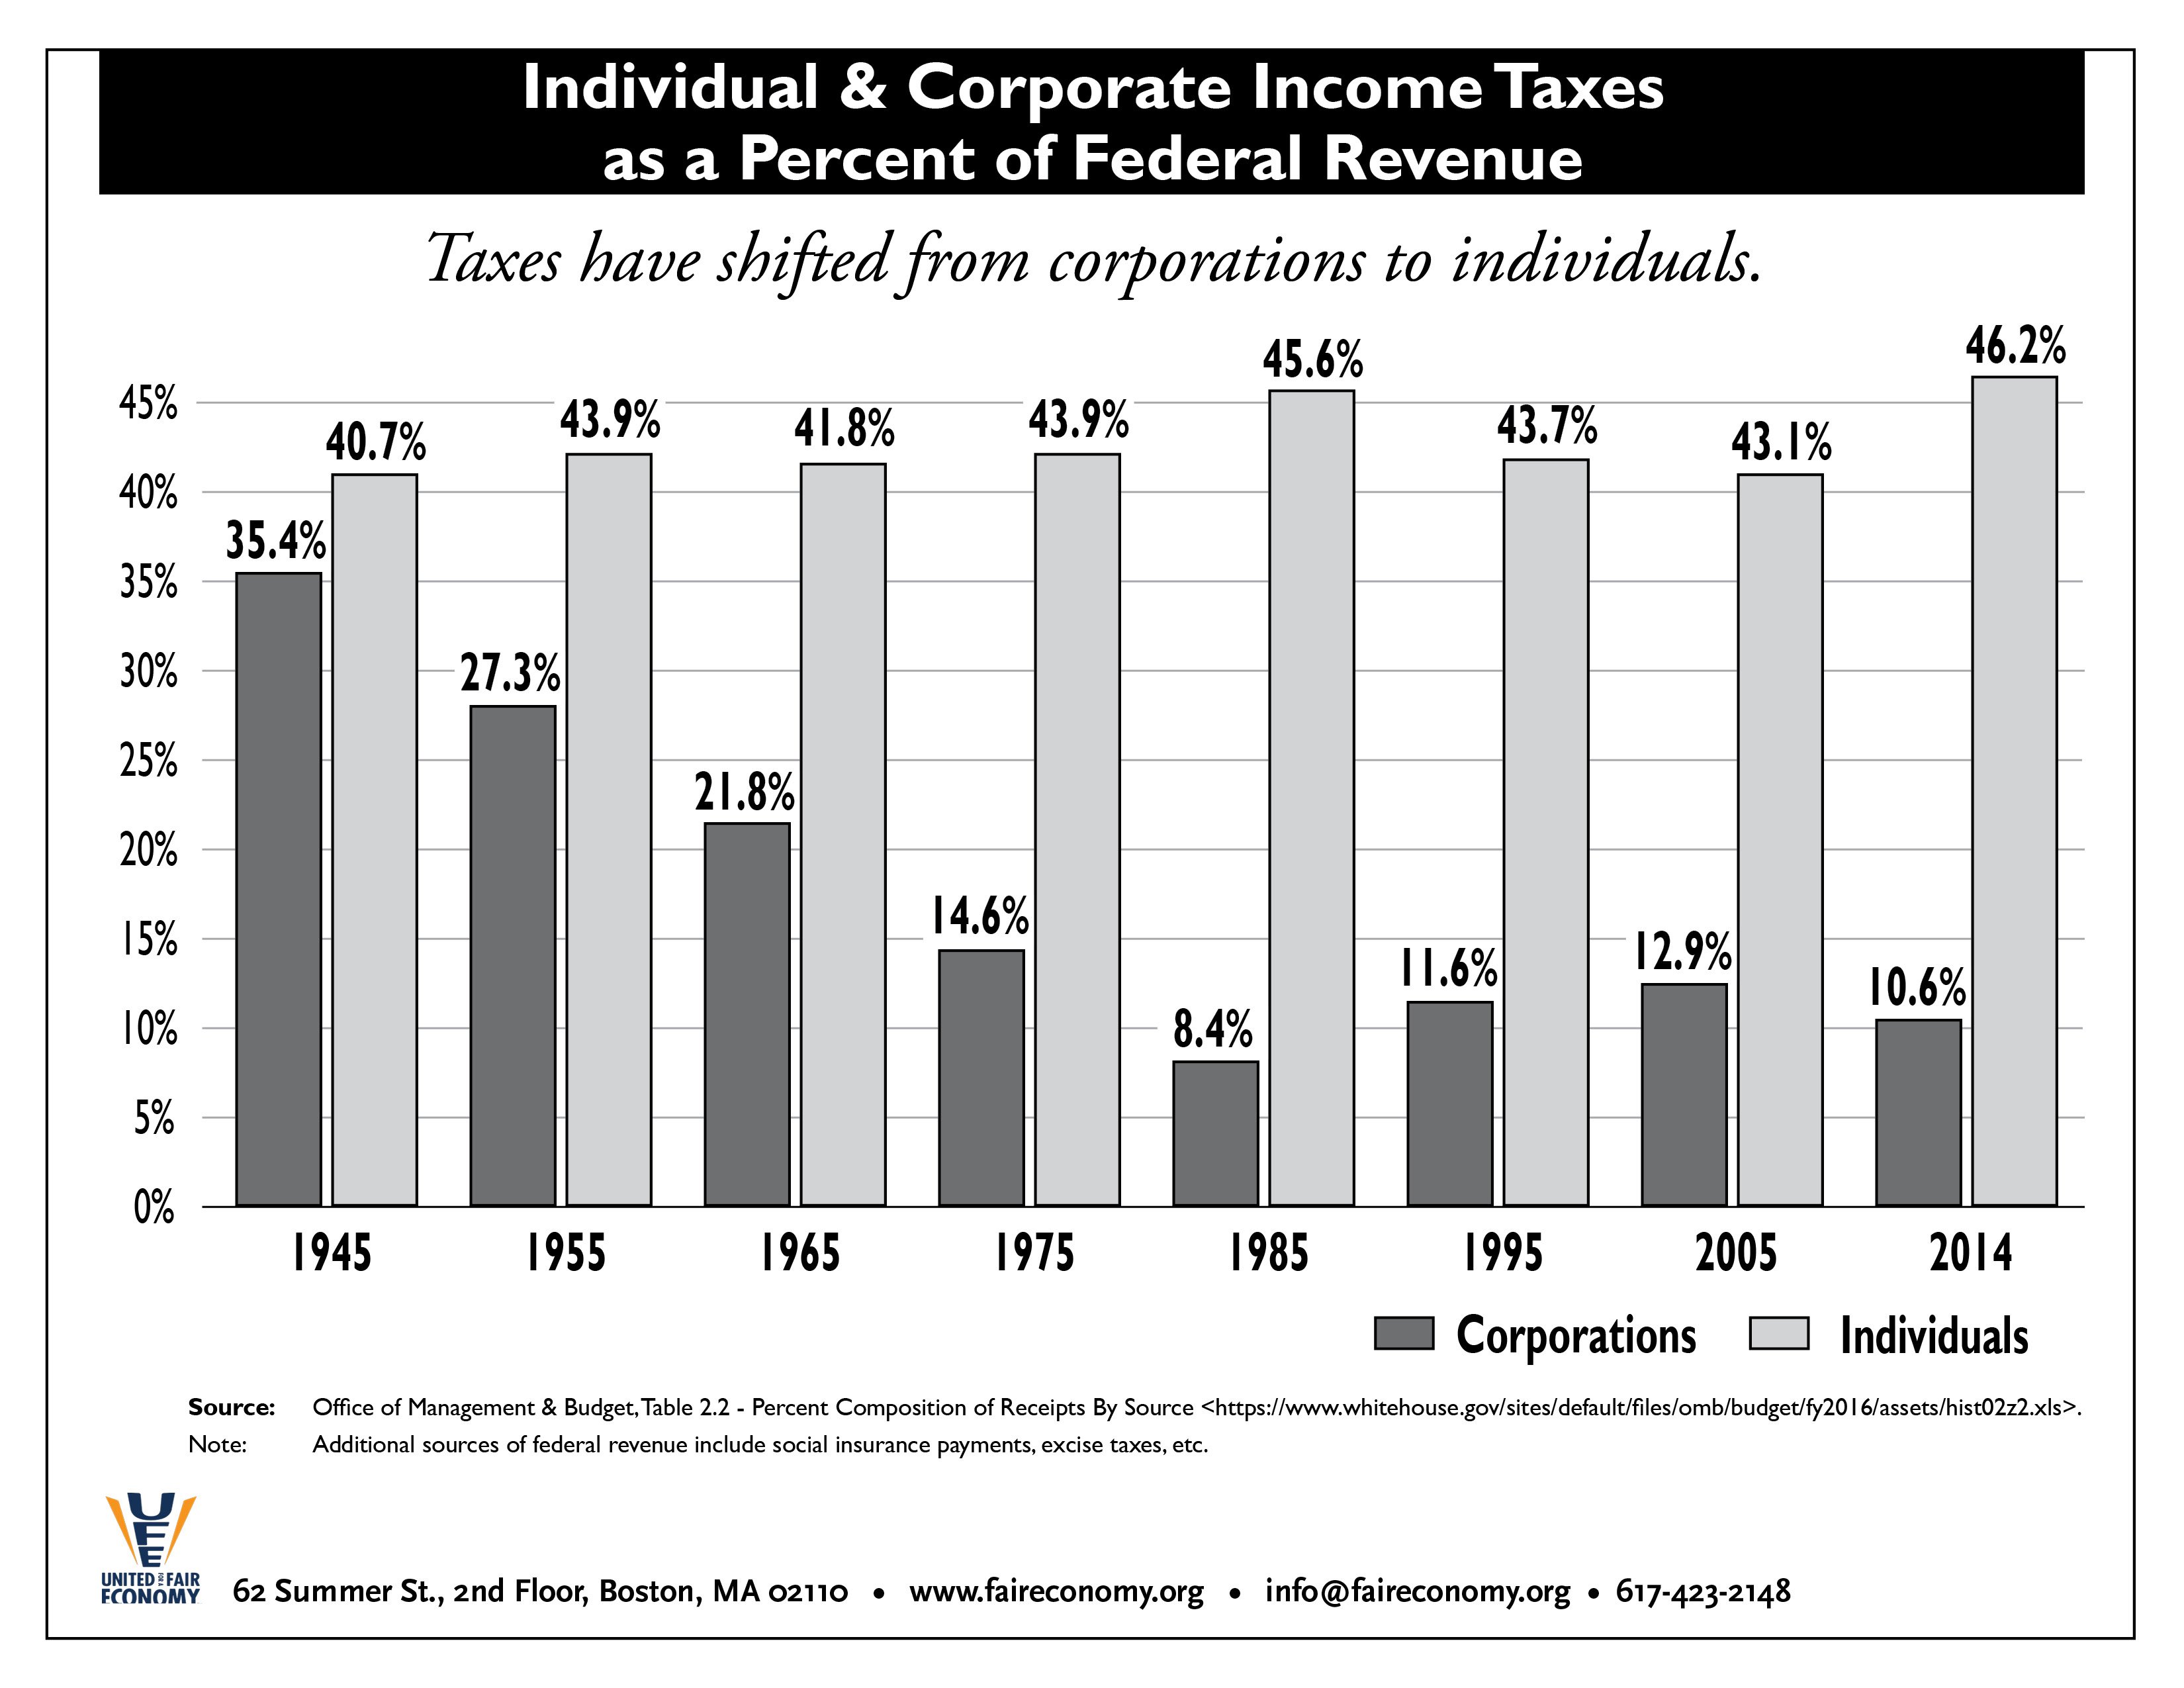 Individual___Corp_Tax_as___of_Fed_Revenue_1945-2014.jpg